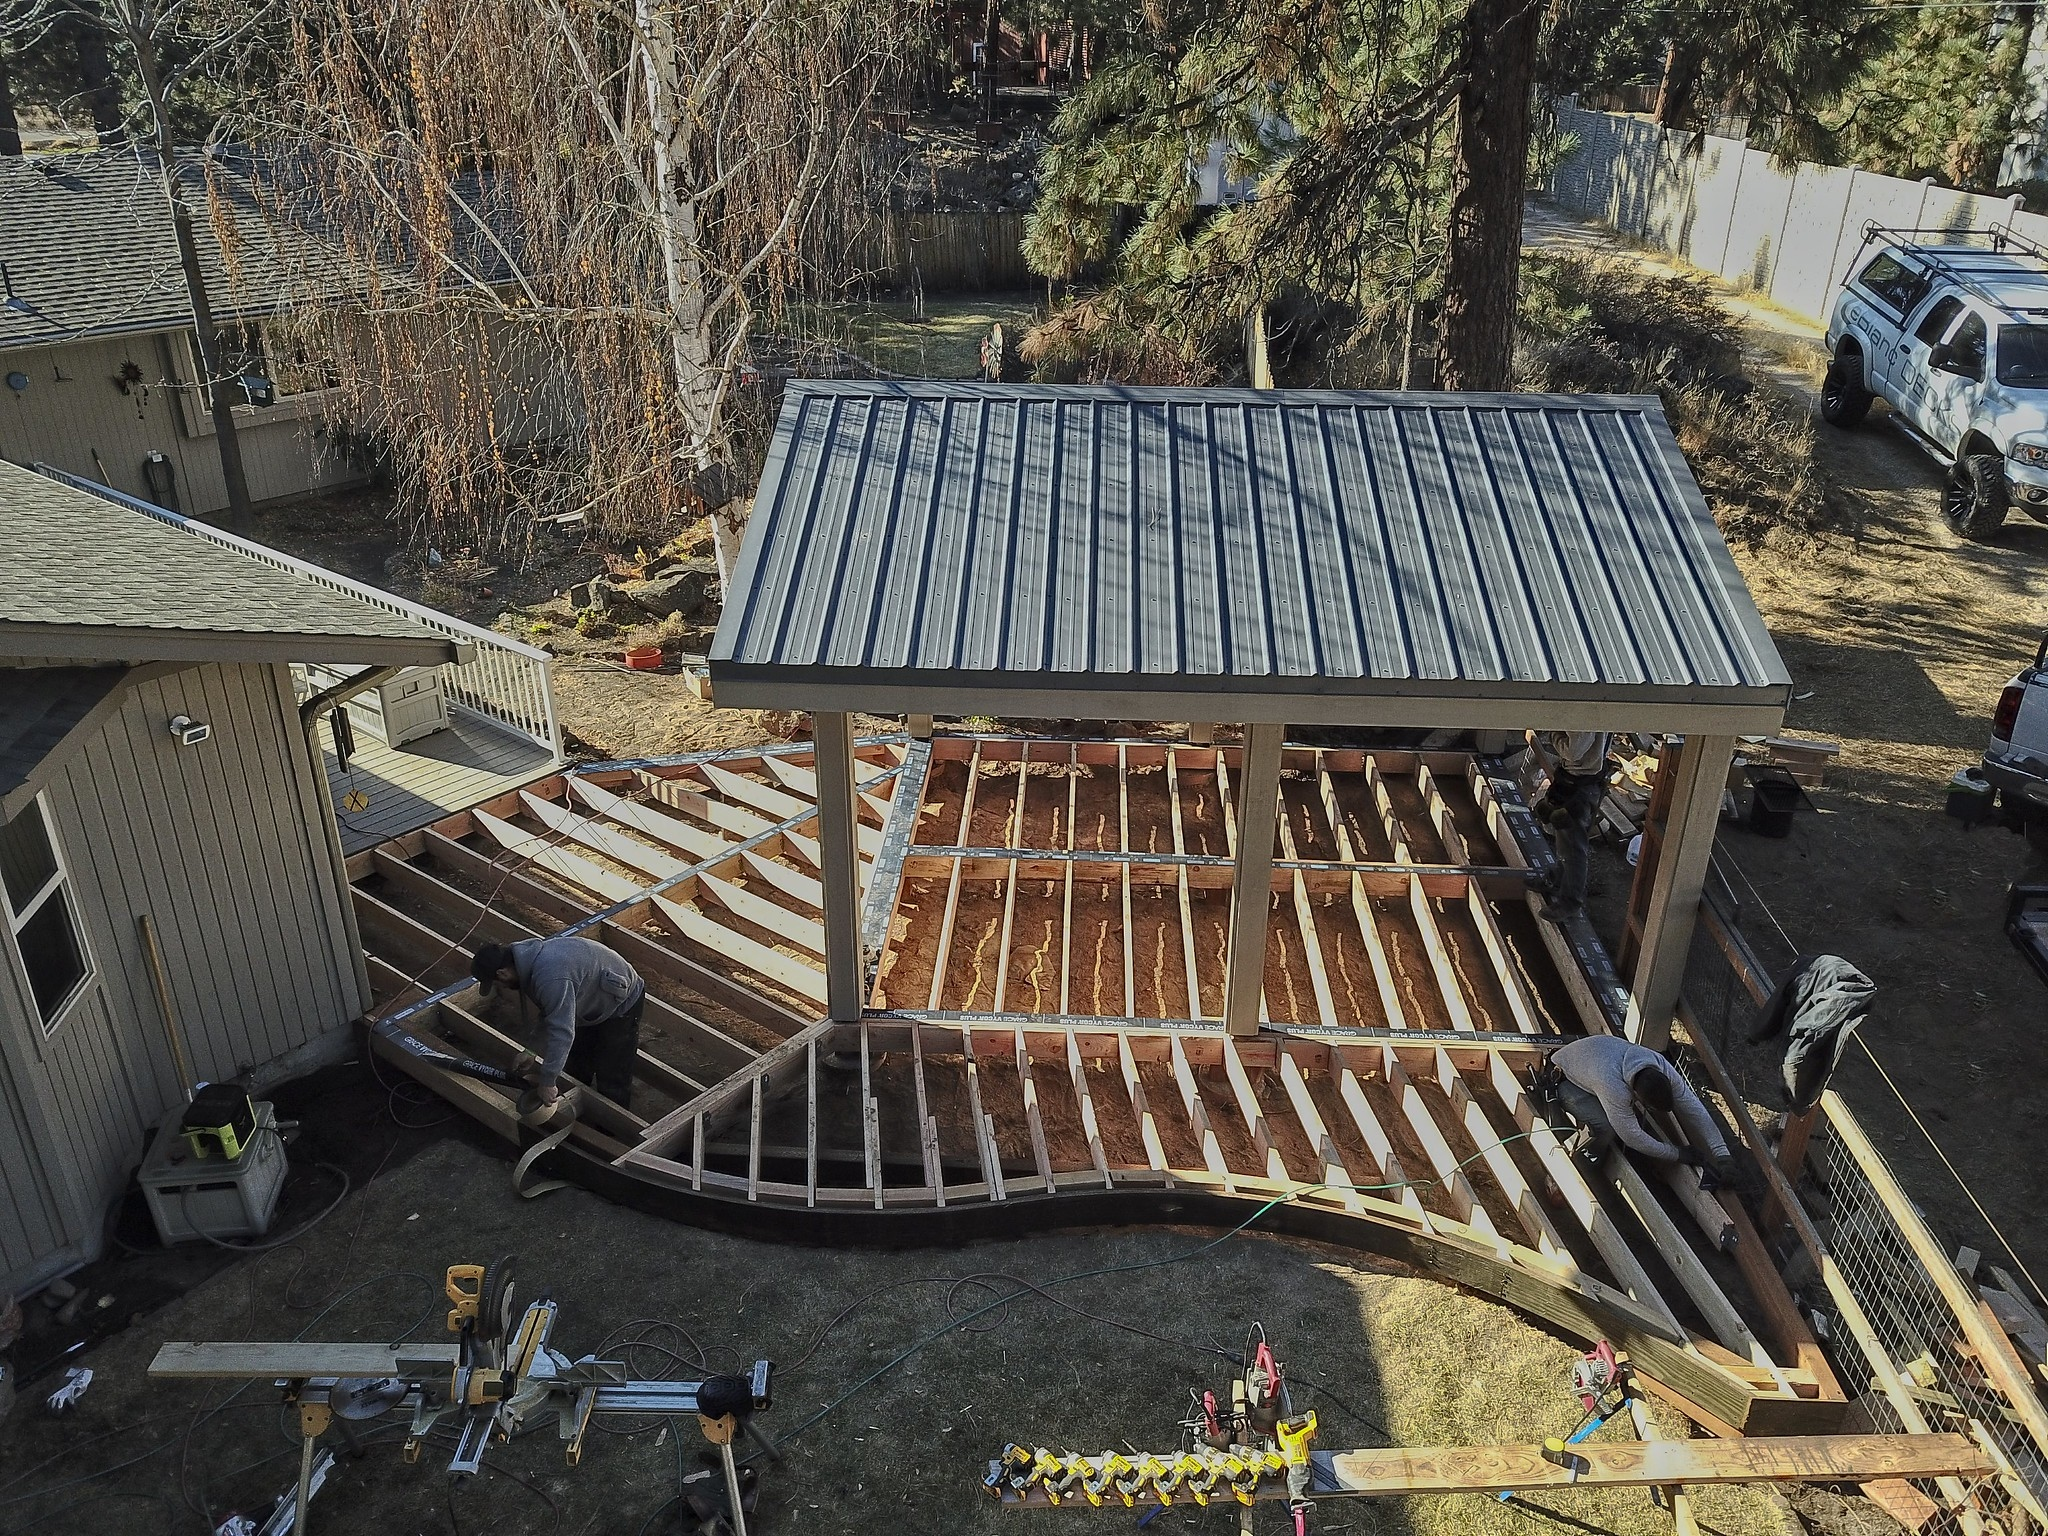 Construction - Using the best practices possible, we build each deck with care and attention to detail.